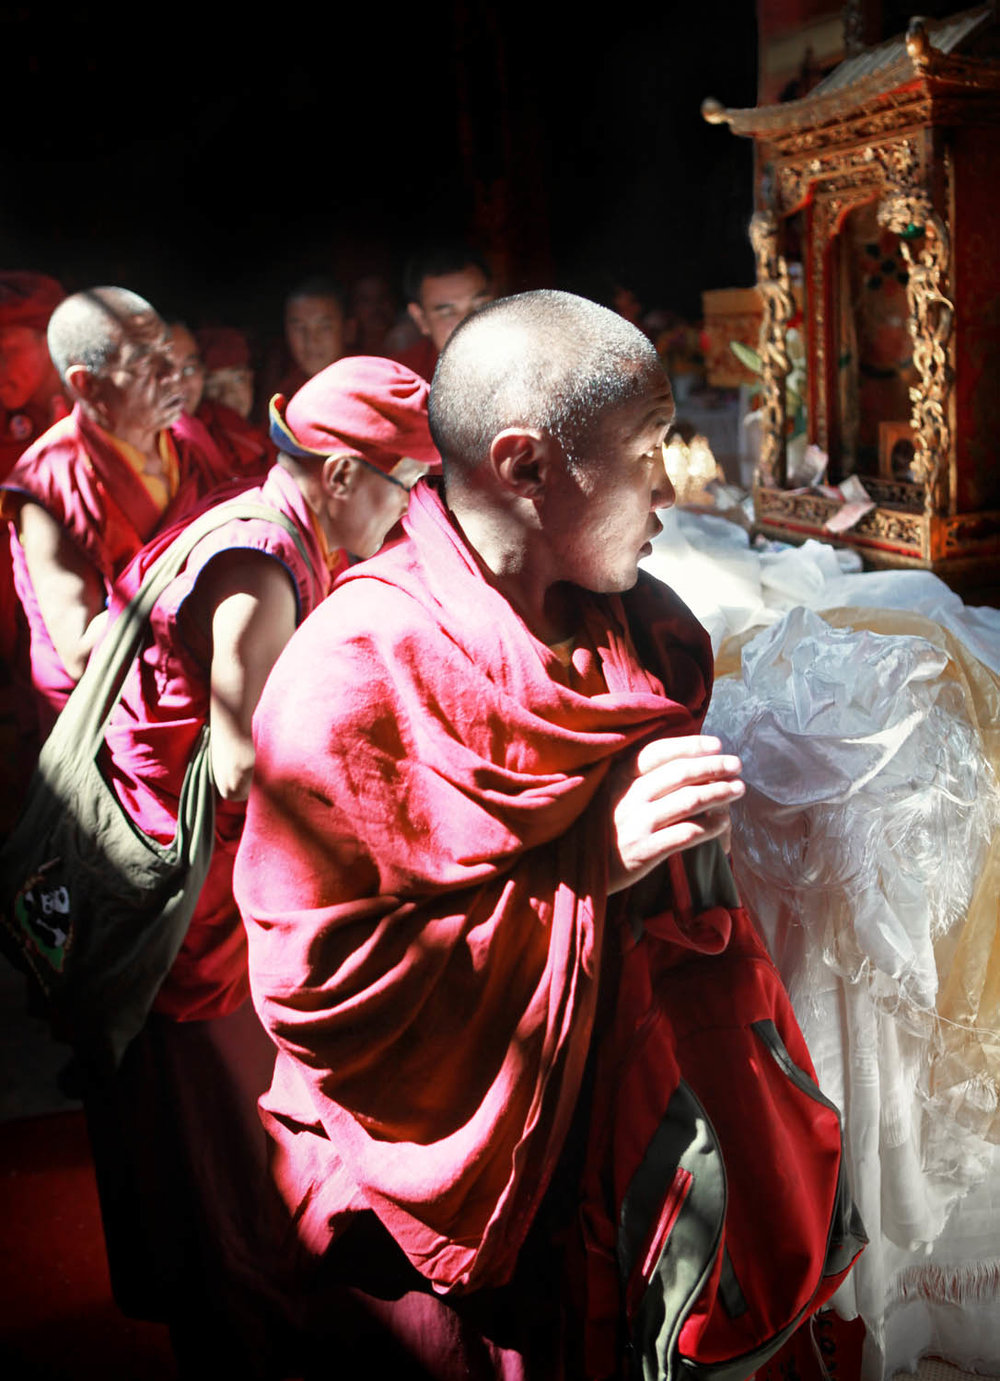 Sacred relic on display, Hemis Monastery, Ladakh